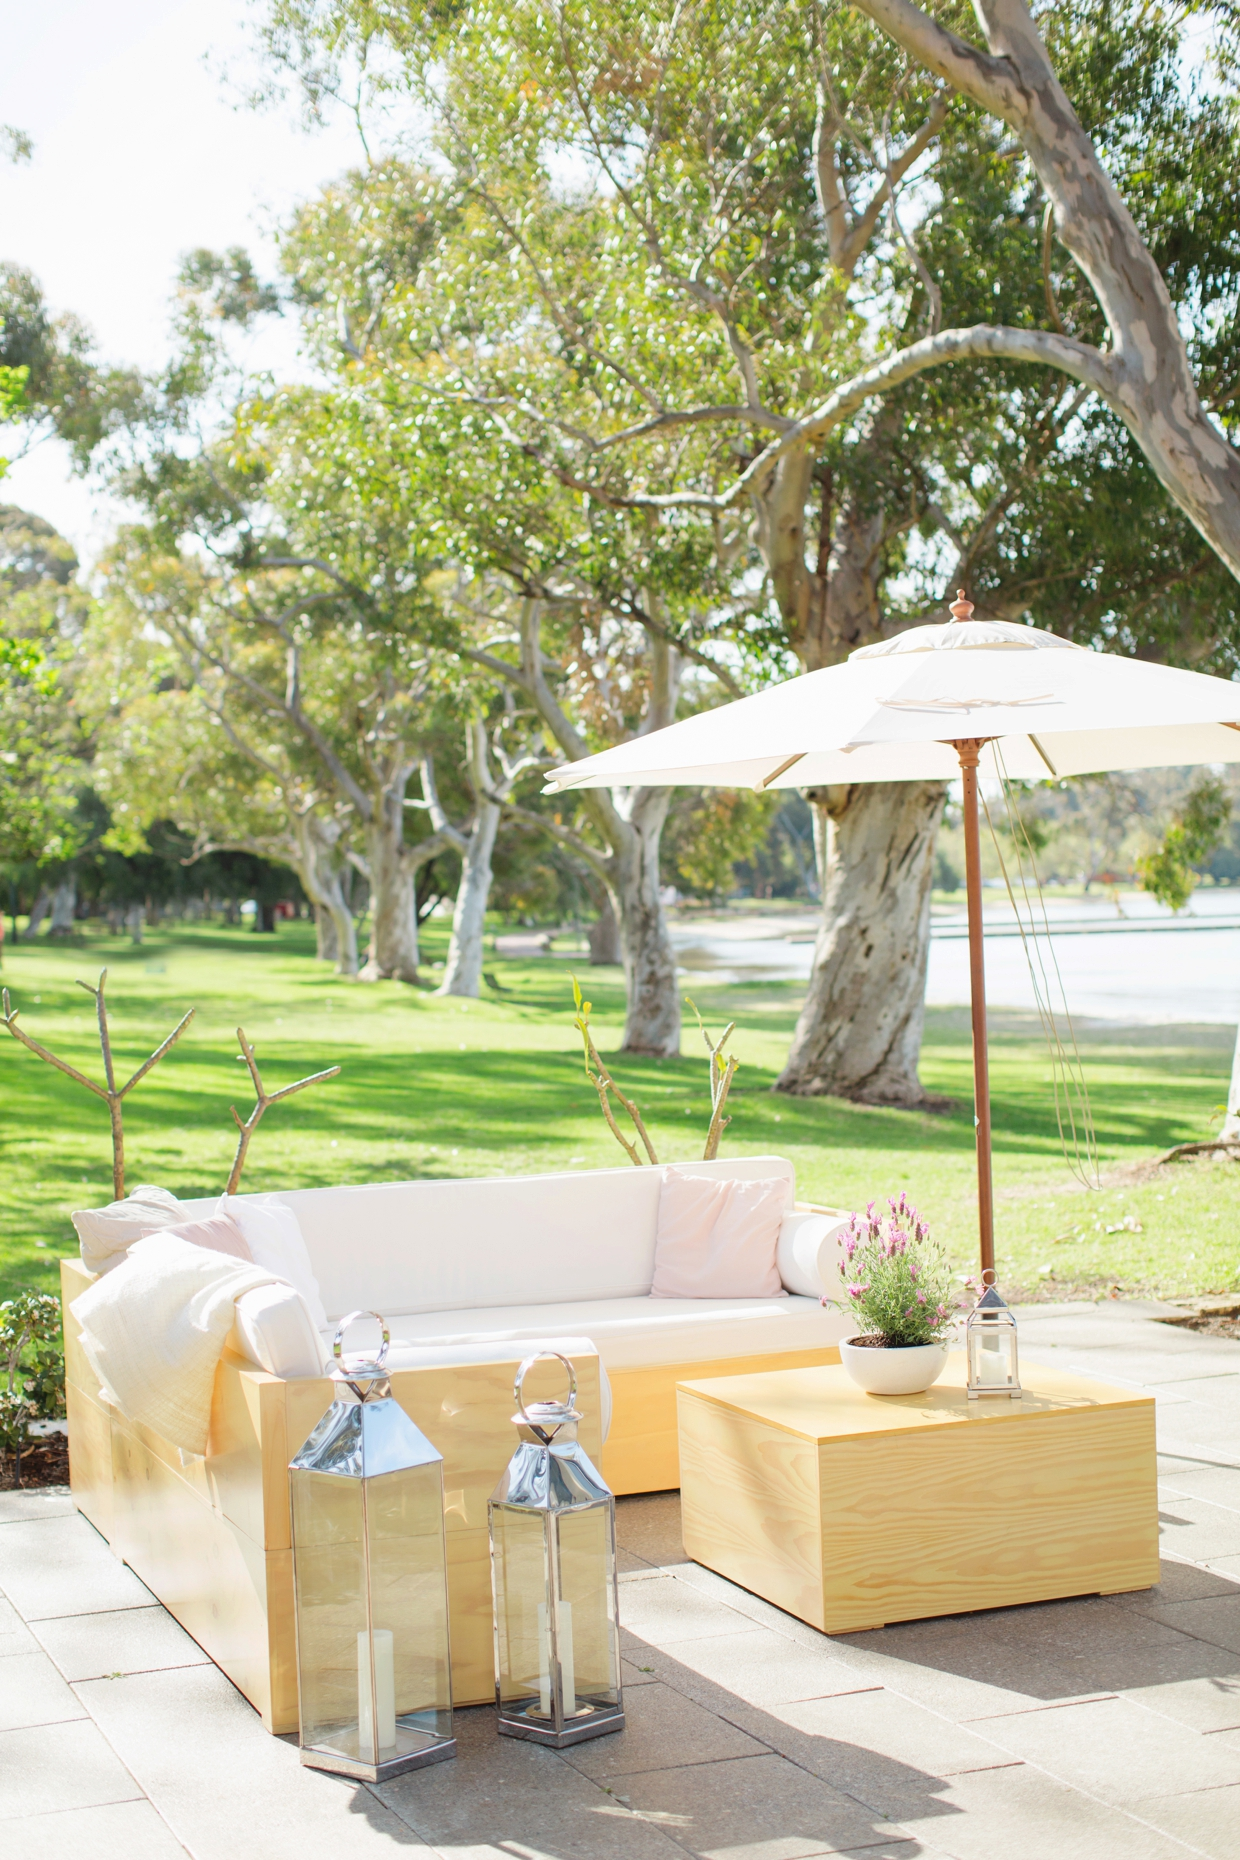 07-Lounge-Hire-Perth-Bride-and-Groom-Store